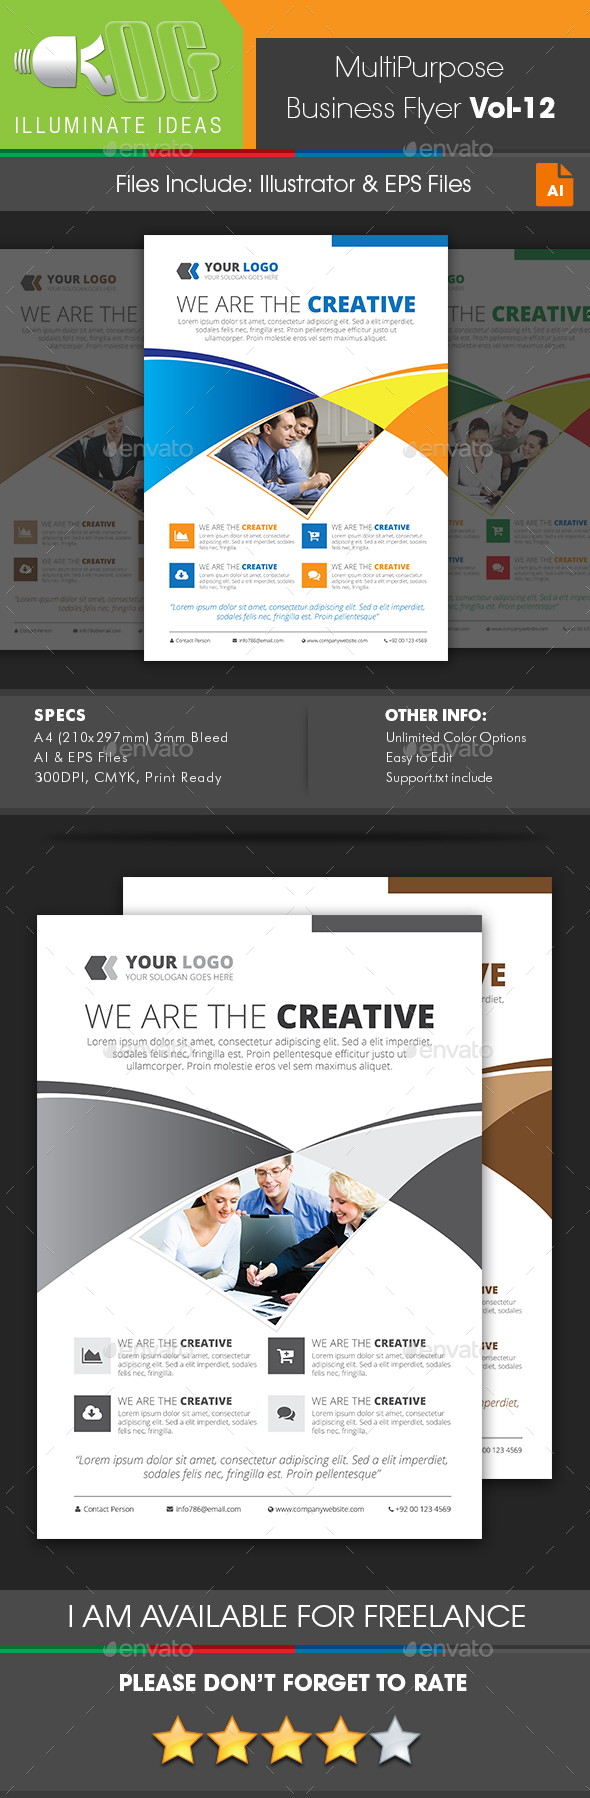 Multipurpose Business Flyer Template Vol-12 - Corporate Flyers